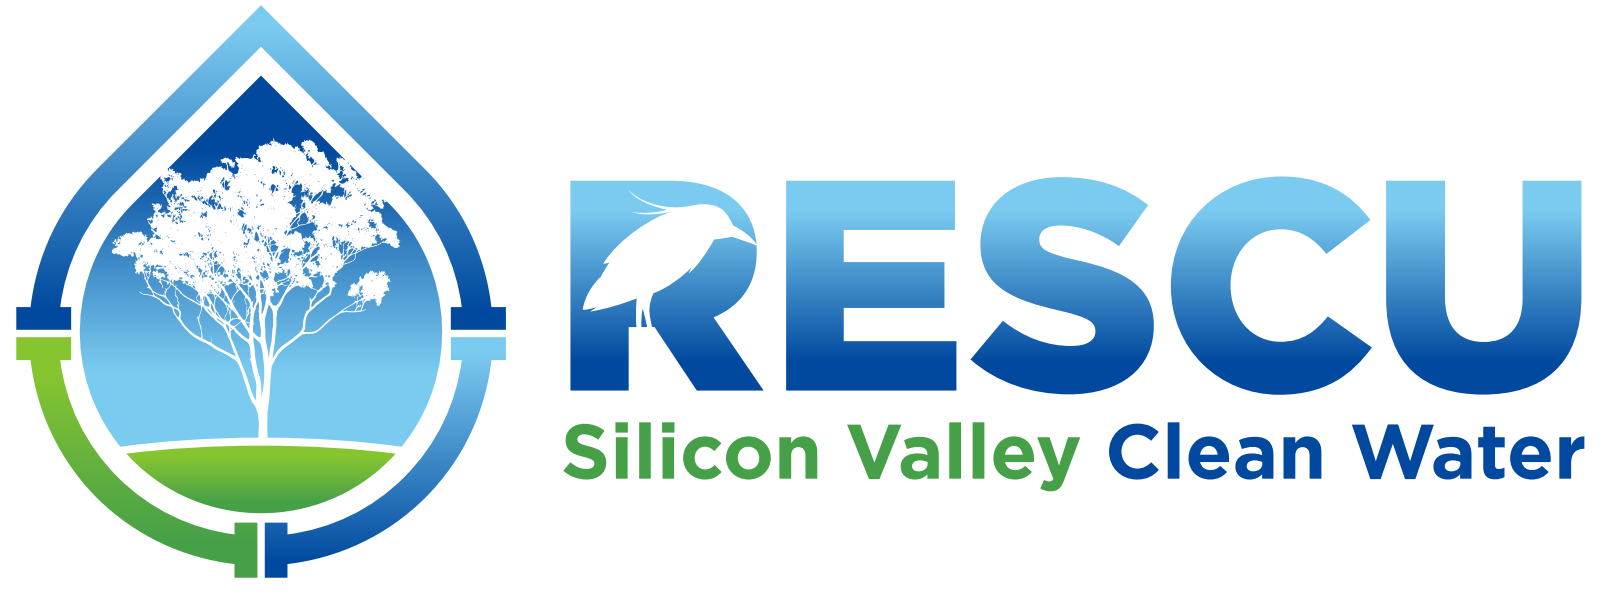 Silicon Valley Clean Water InvestorRelations - Official Seal or Logo